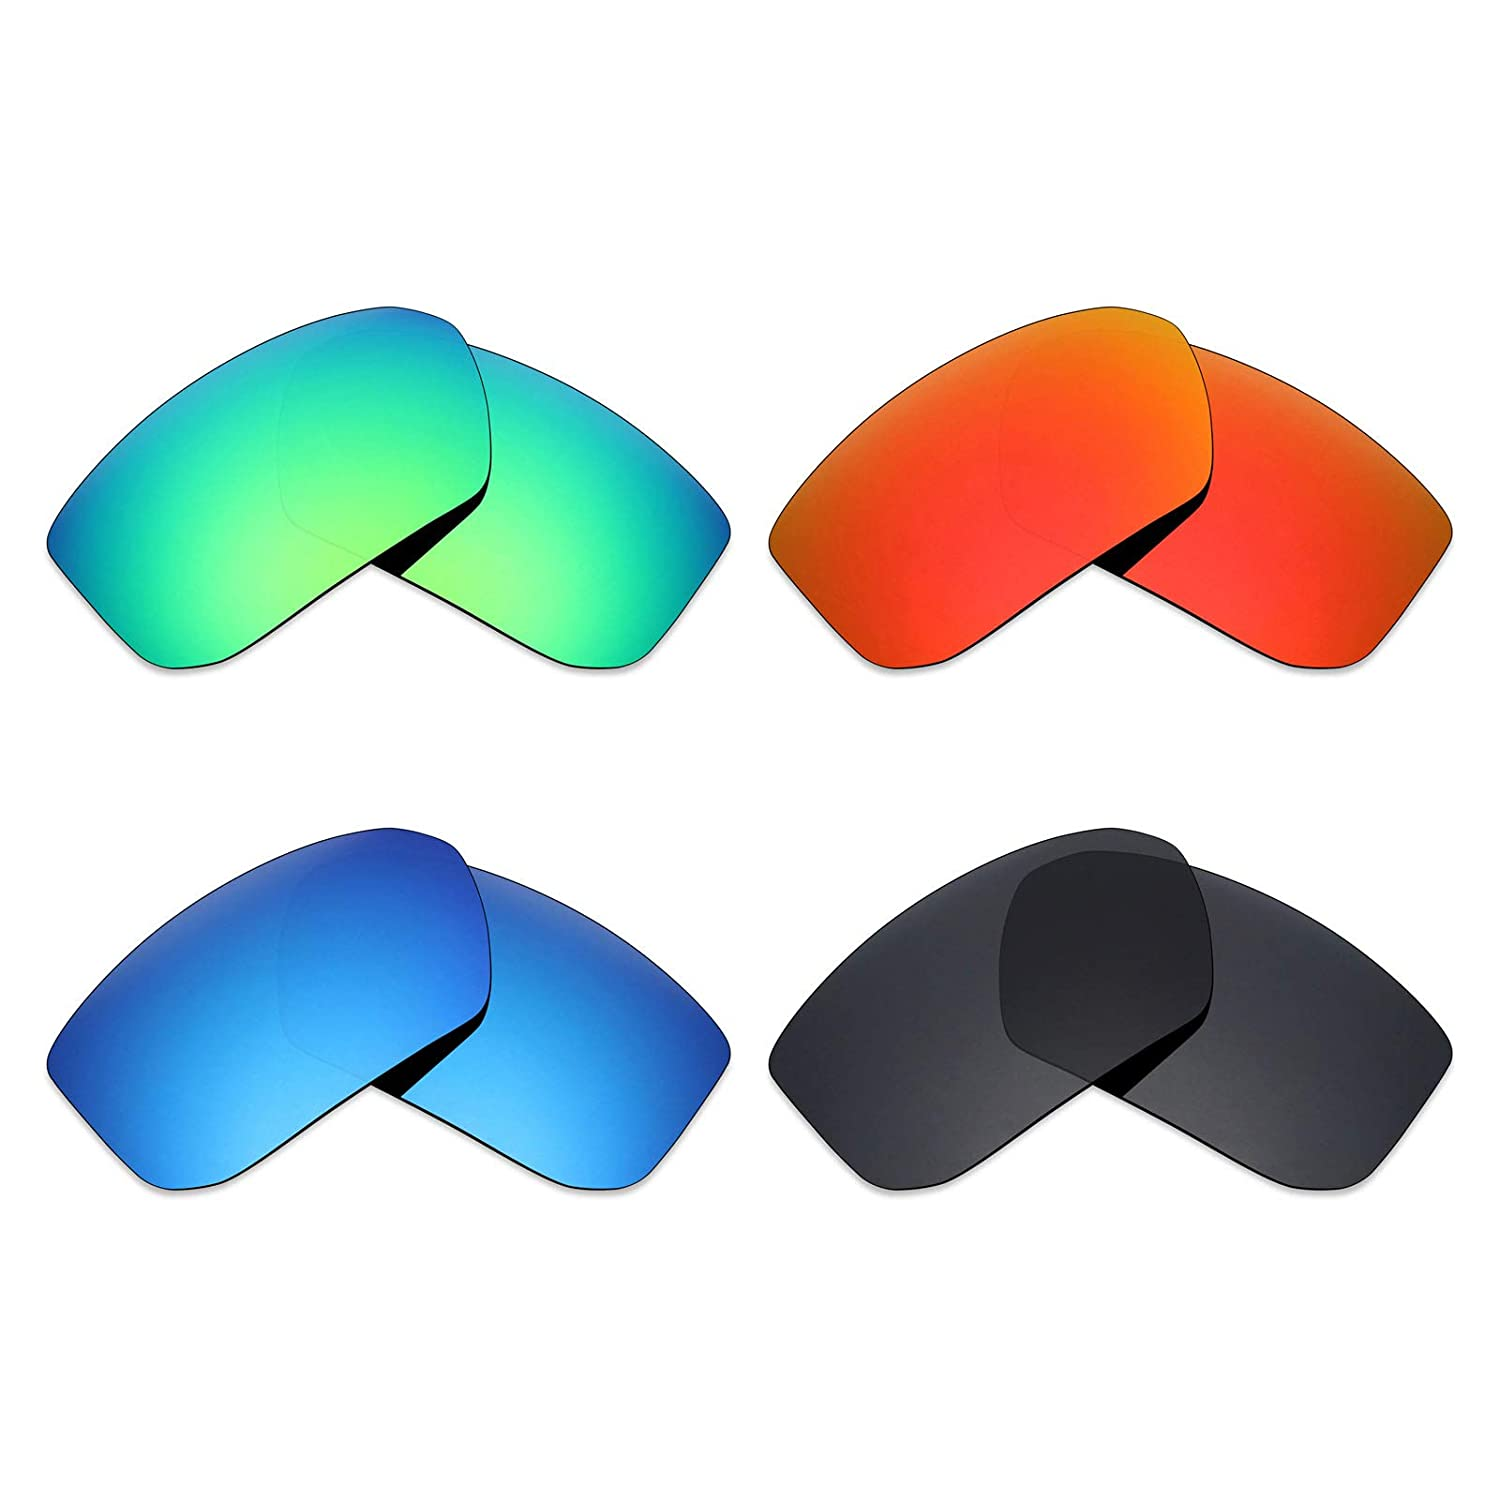 Stealth Black//Fire Red//Ice Blue//Emerald Green Mryok 4 Pair Polarized Replacement Lenses for Spy Optic Mccoy Sunglass